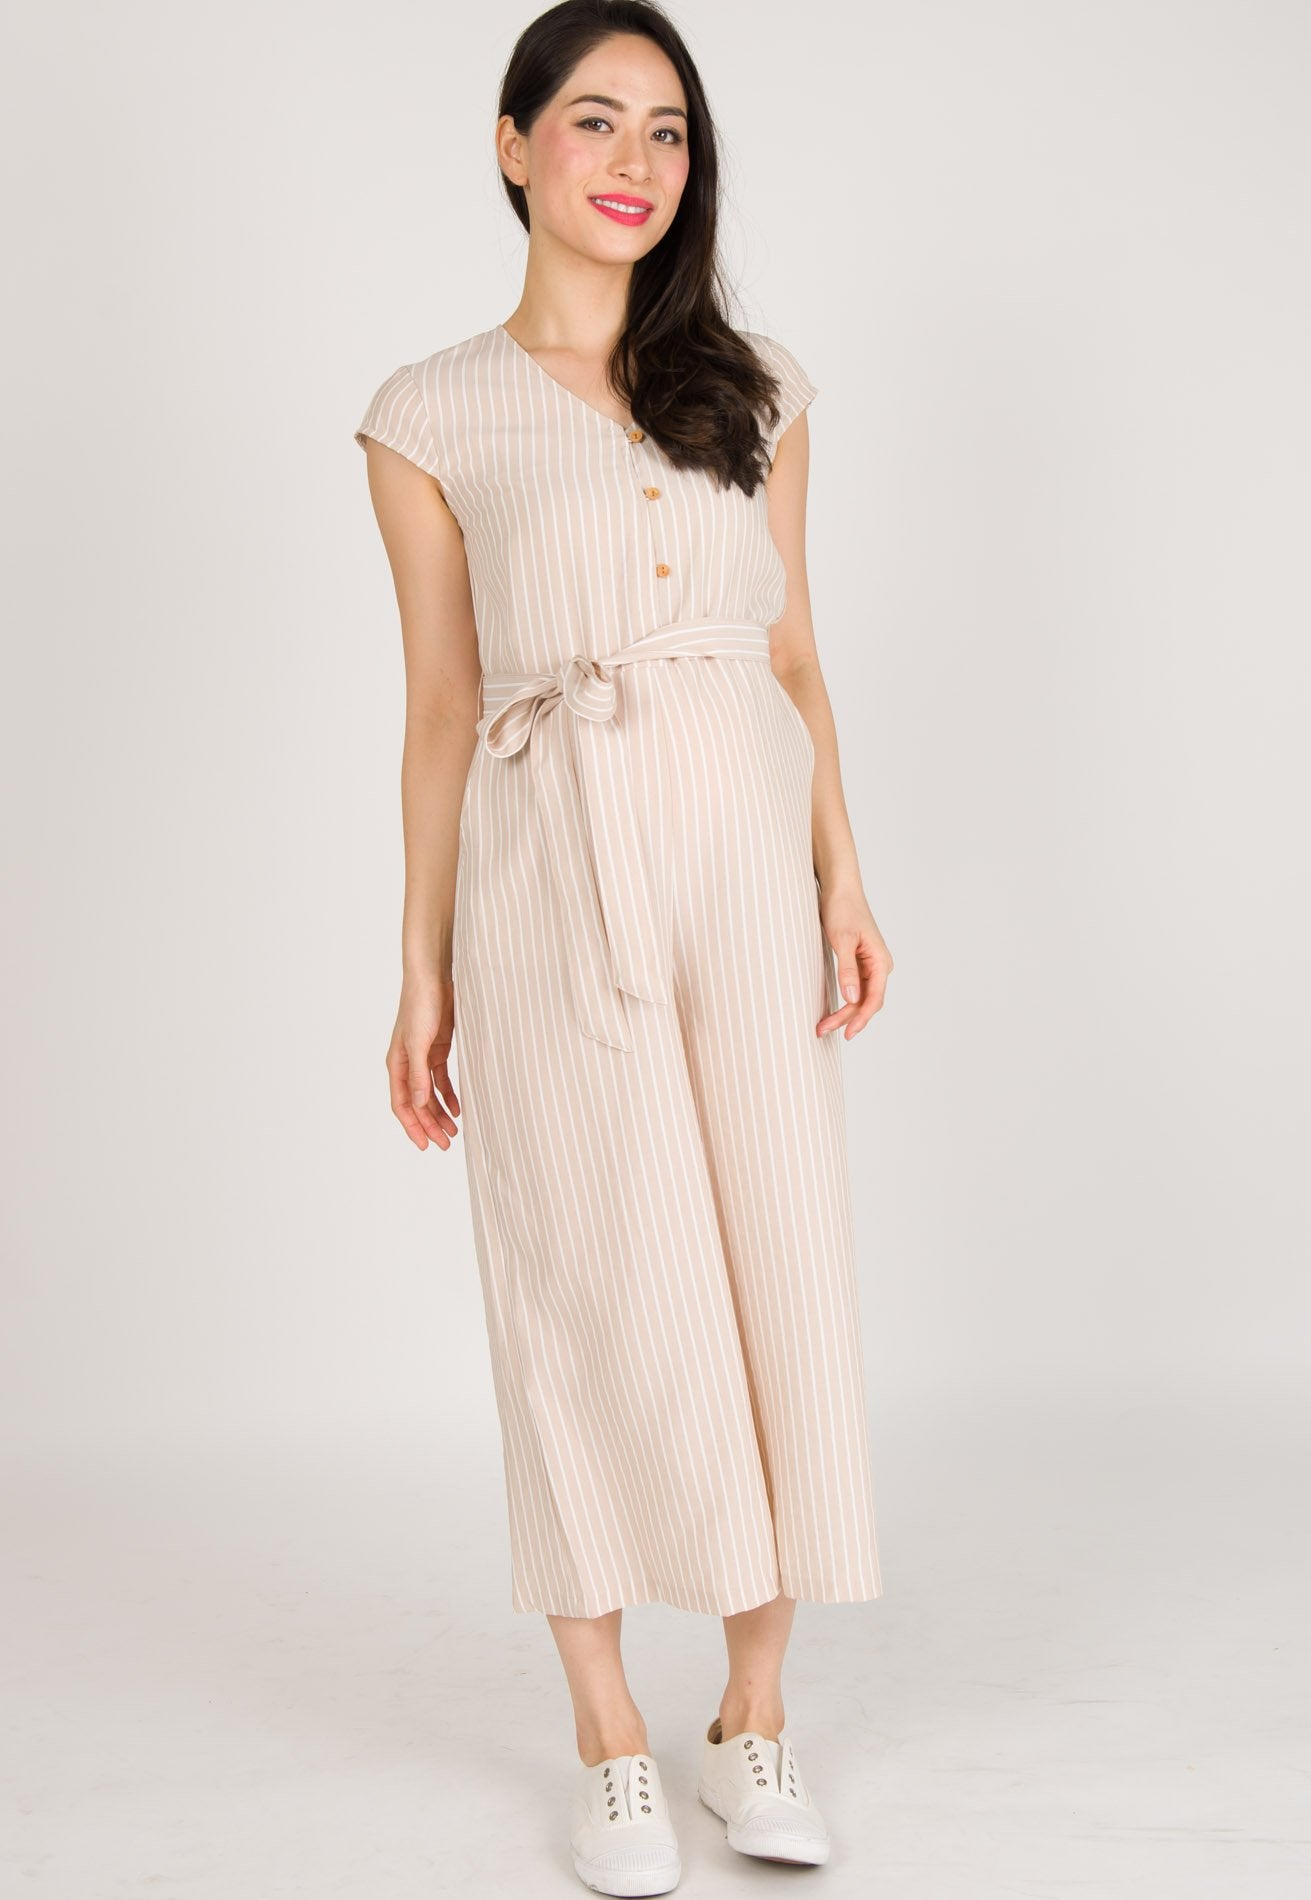 Fleur Button Down Nursing Jumpsuit in Nude  by JumpEatCry - Maternity and nursing wear